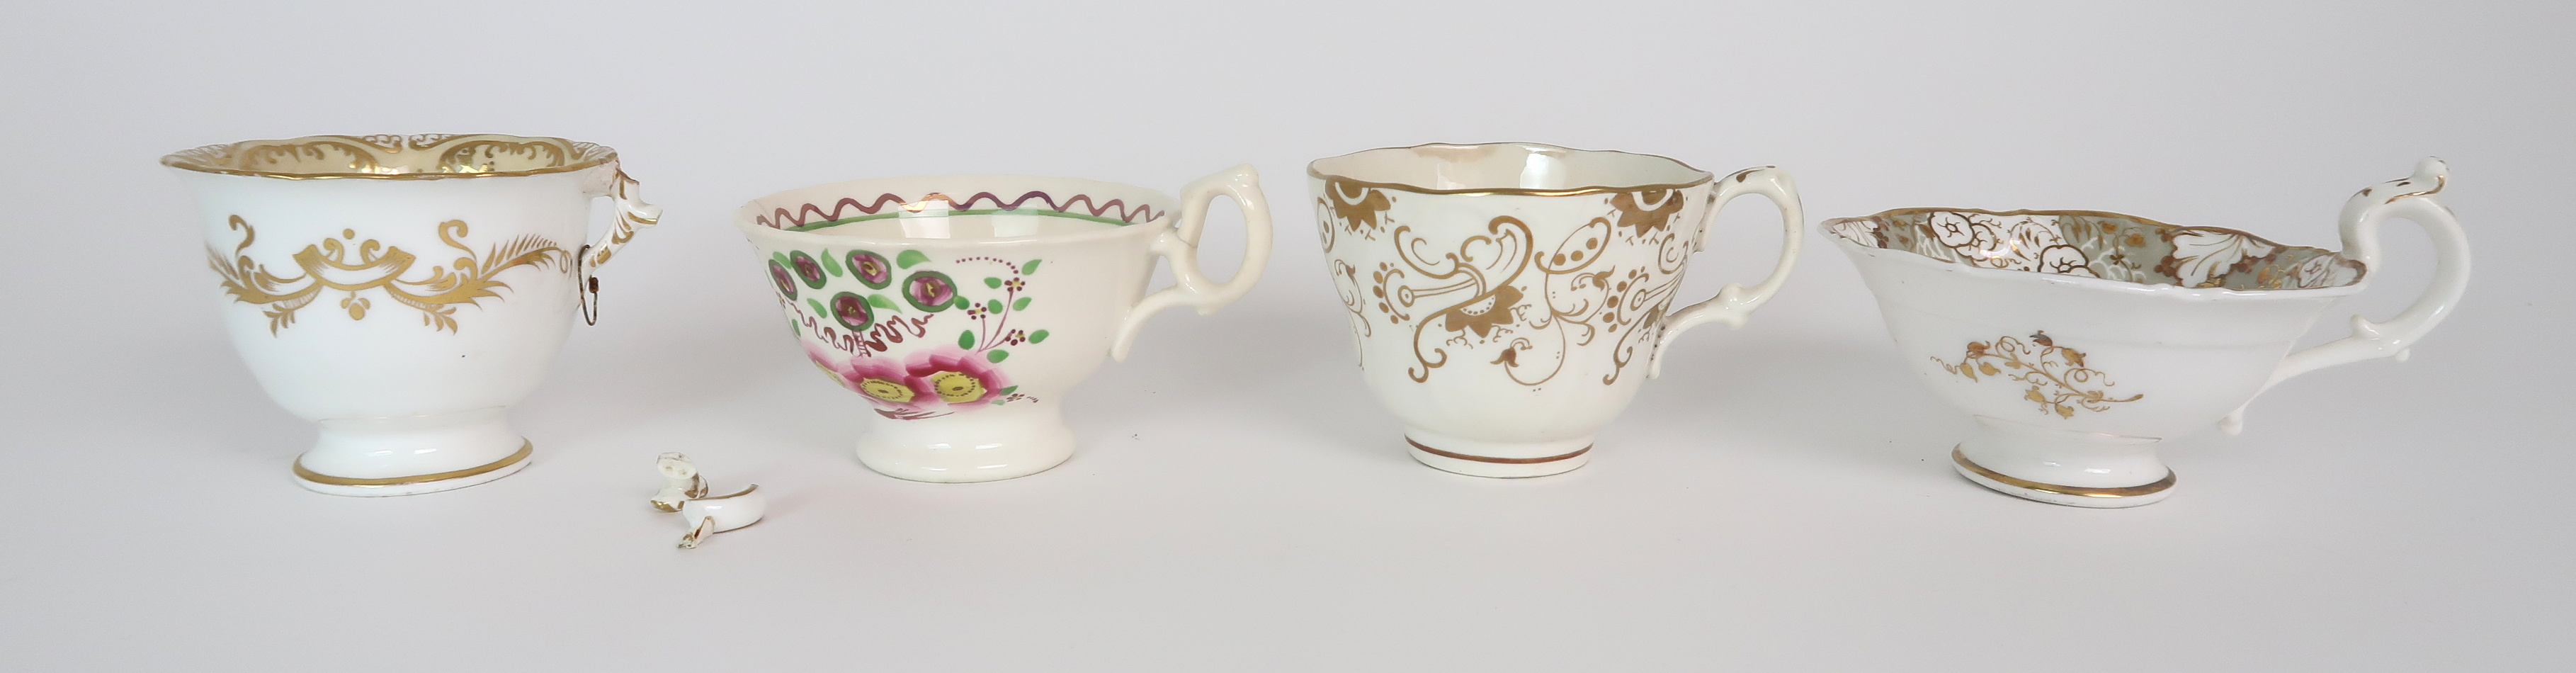 A COLLECTION OF 19TH CENTURY ENGLISH TEA AND COFFEE WARES the white ground with either grey and gilt - Image 4 of 22